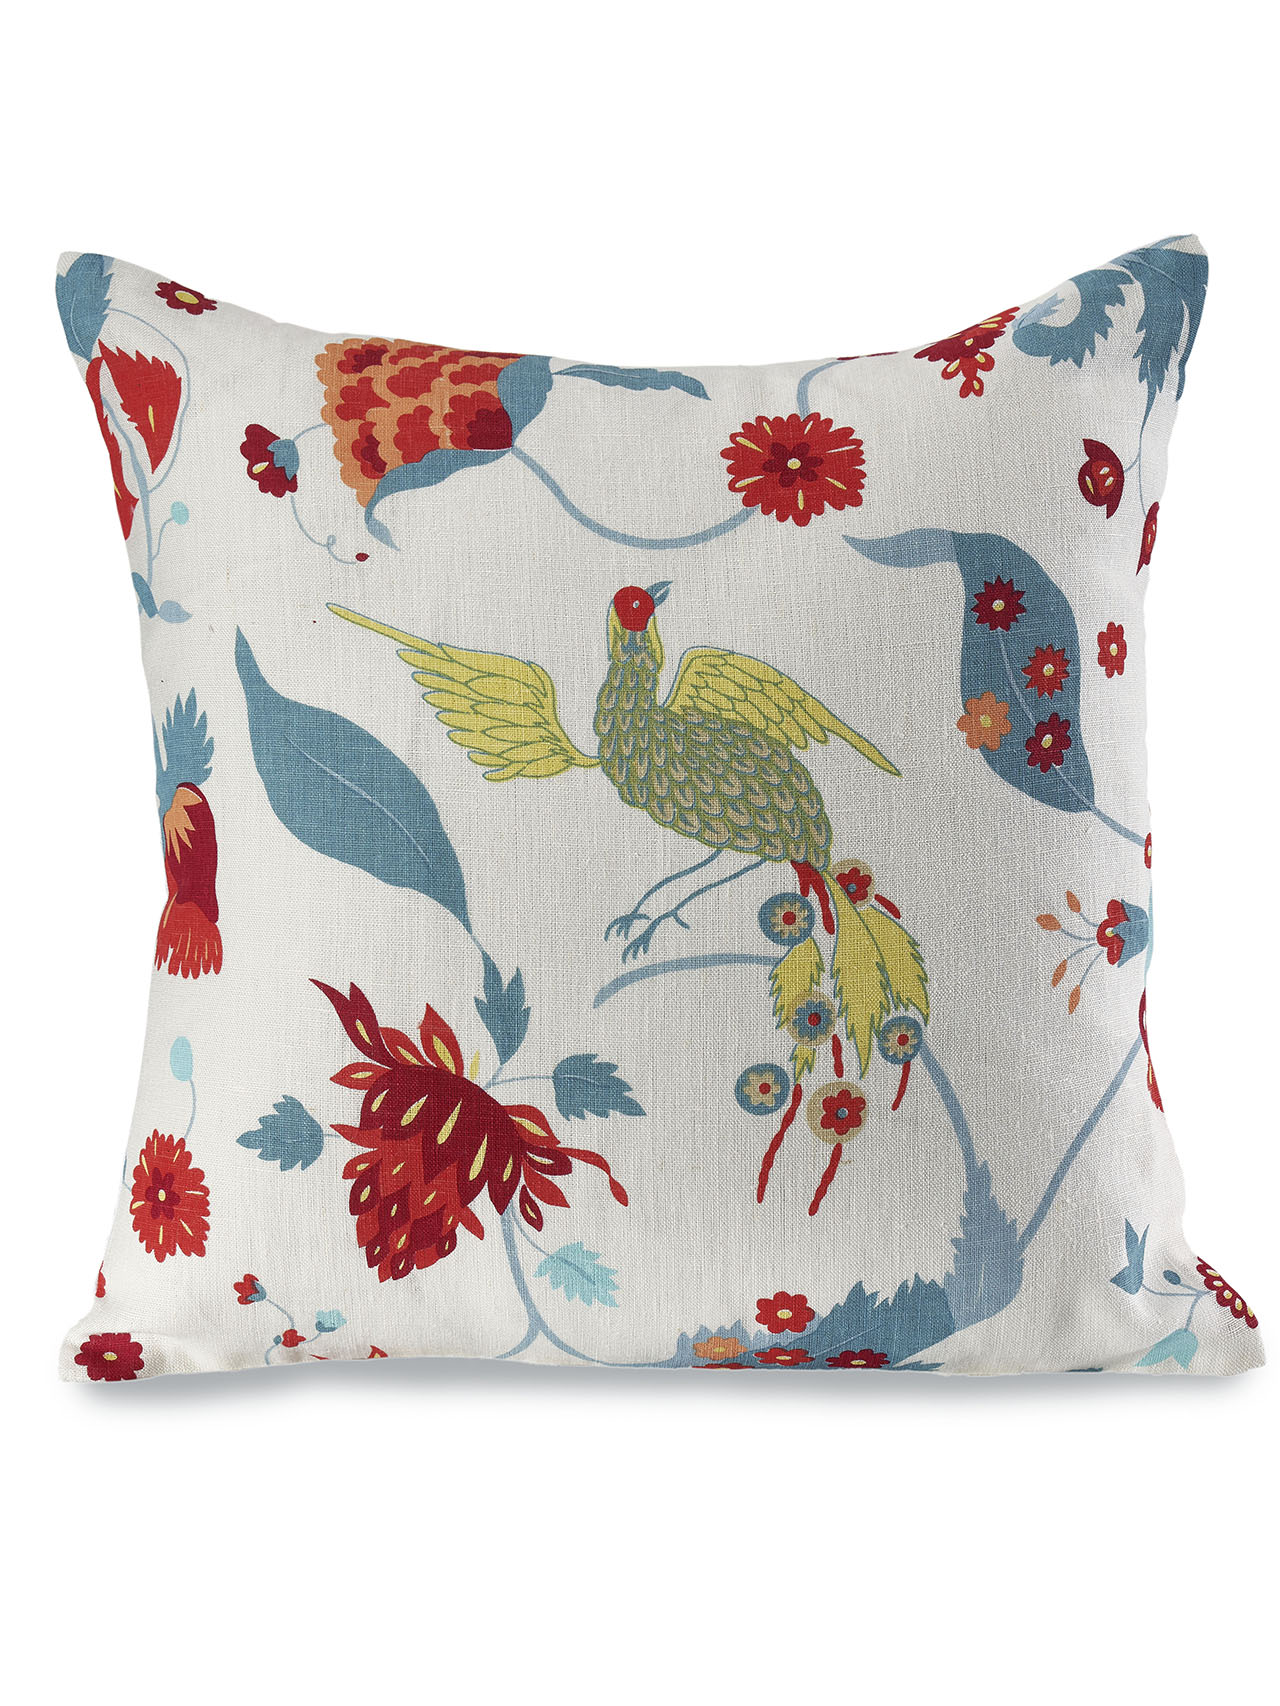 Full of light and vibrant colour, our Laila fabric is screen printed by hand, allowing for small imperfections that add movement to the design. And amid the fantastical flowers of this playful and intricate pattern live a whimsical collection of animals - swooping birds, quixotic monkeys and quirky cats. Simplicity is key. Our cushion covers are made in the most minimalistic style with two pieces of pure linen fabric stitched together using the 'knife-edge' technique. The finished pillows are plump in the center, flat around the edges and closed with high quality, Japanese YKK zips.